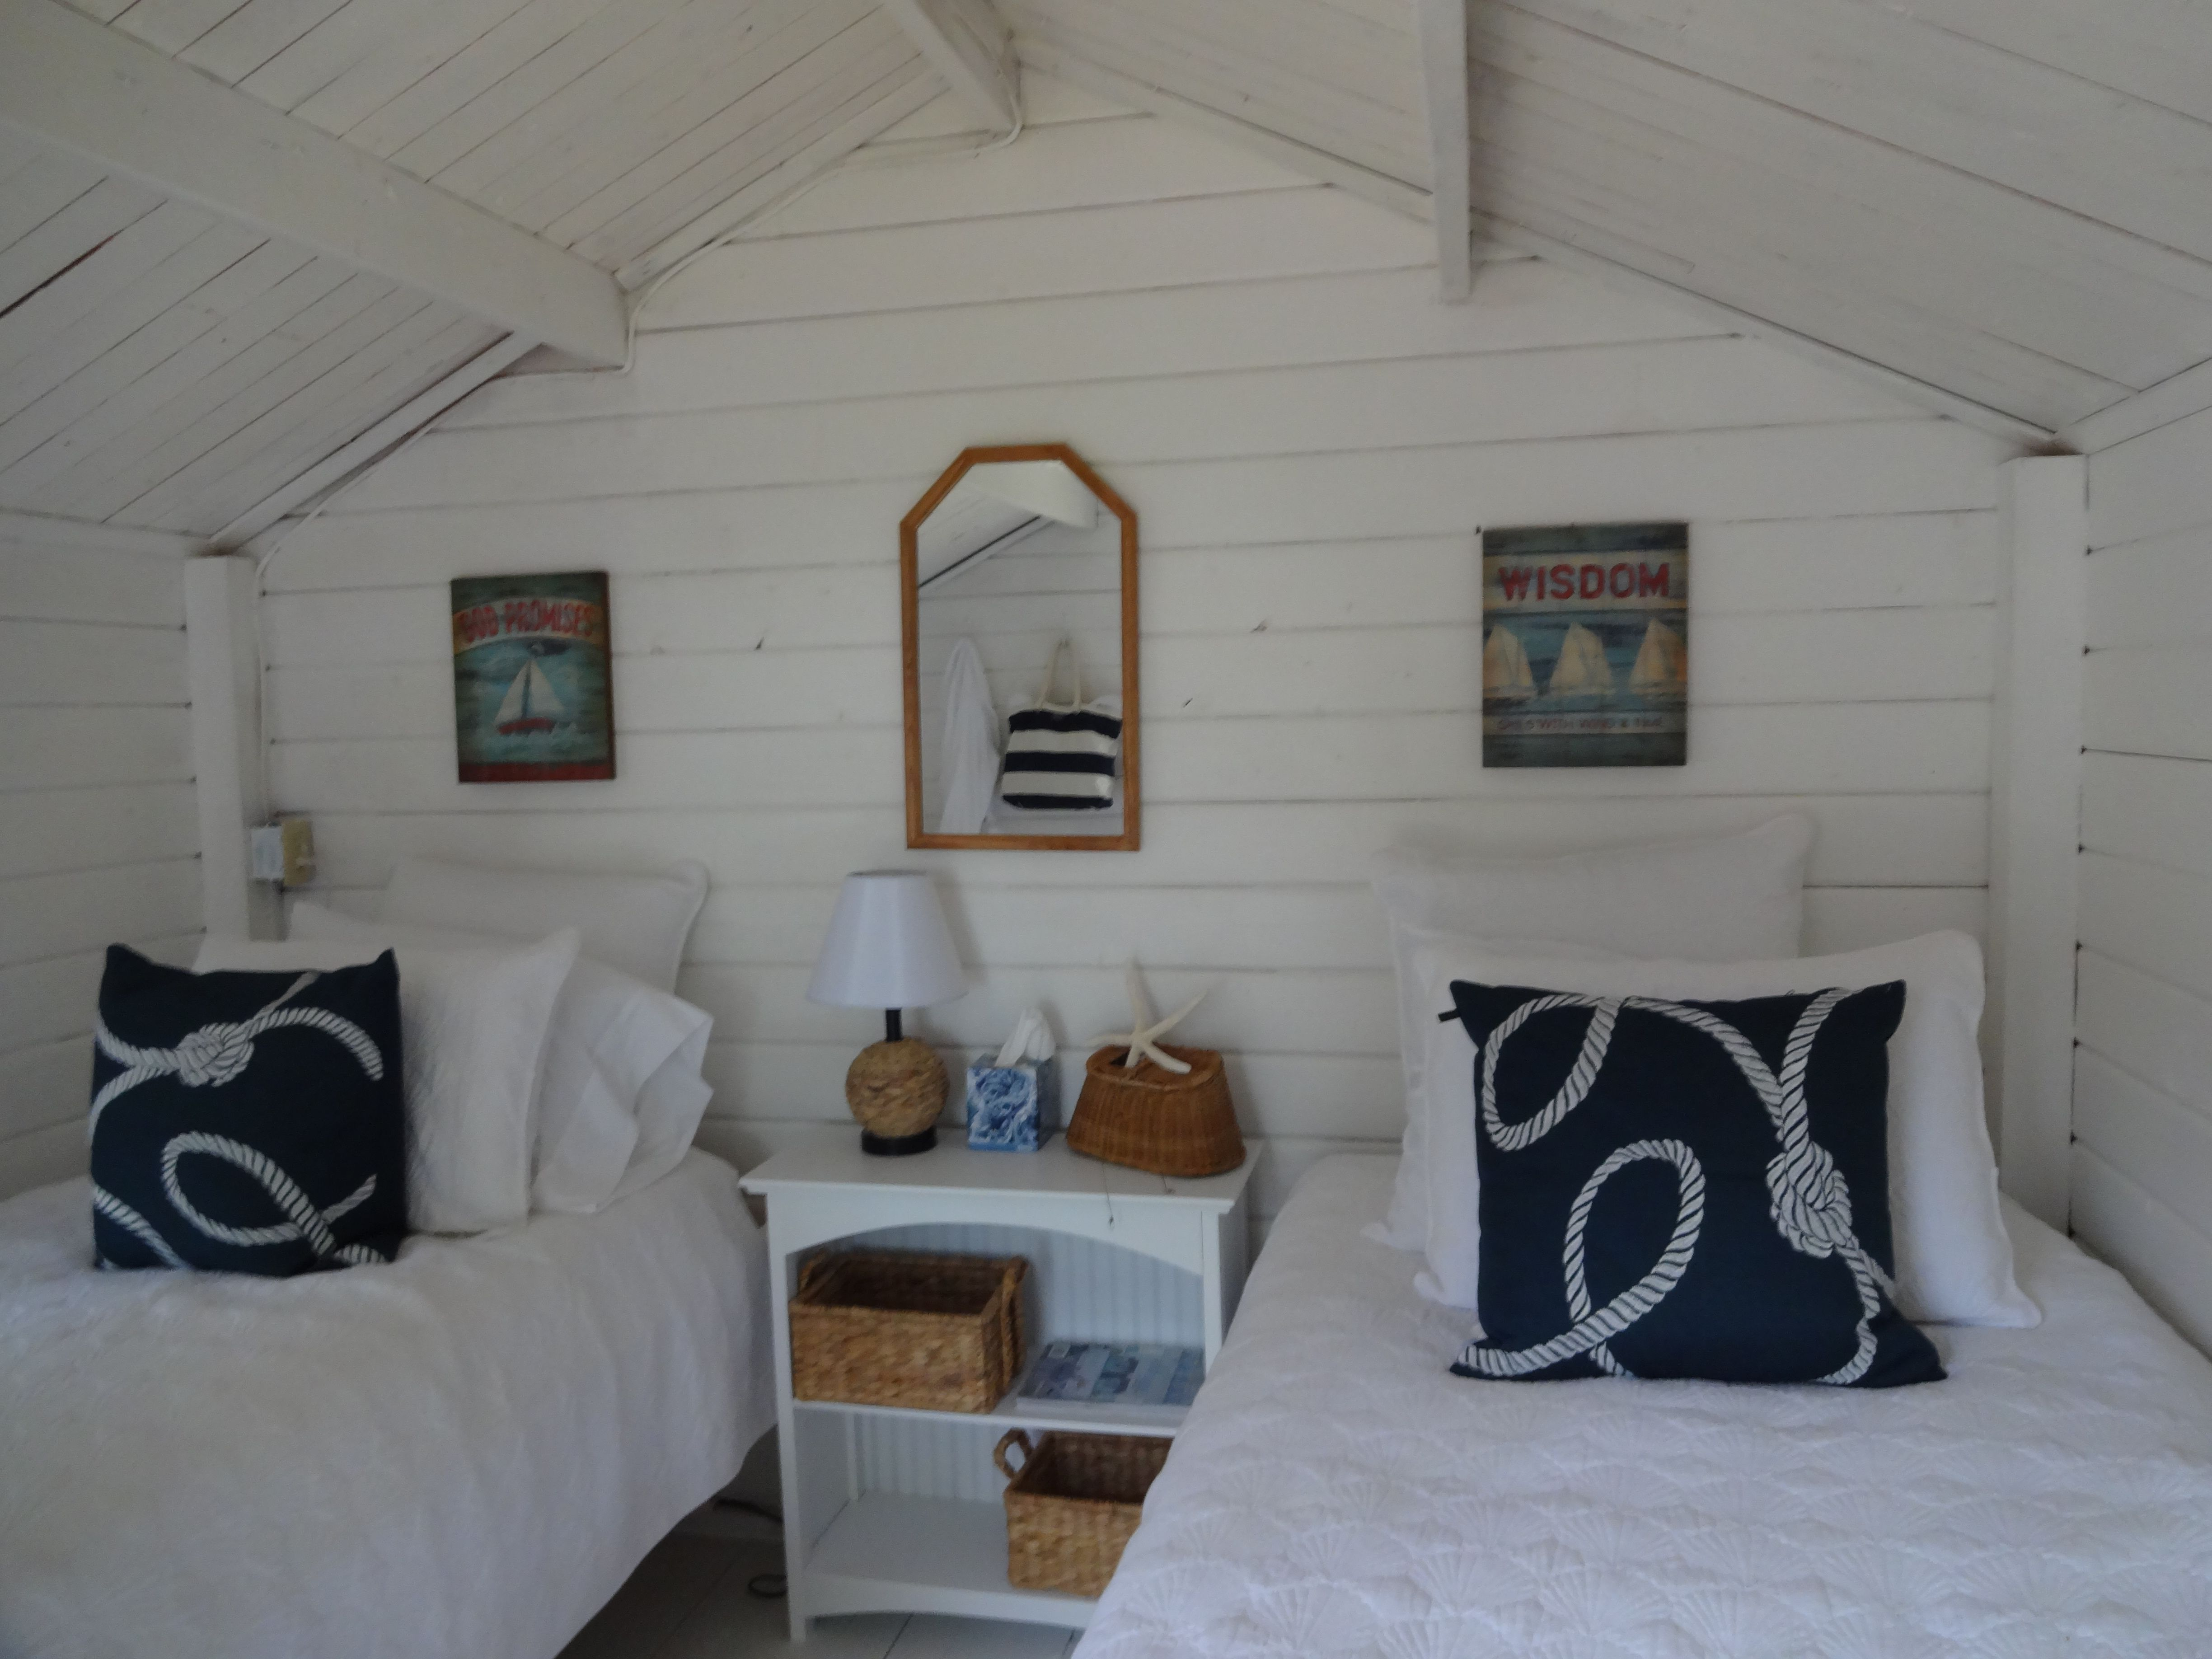 Converting sheds into livable space miniature homes and spaces - What To Do When You Need More Sleeping Space Turn The Shed Into A Bunk